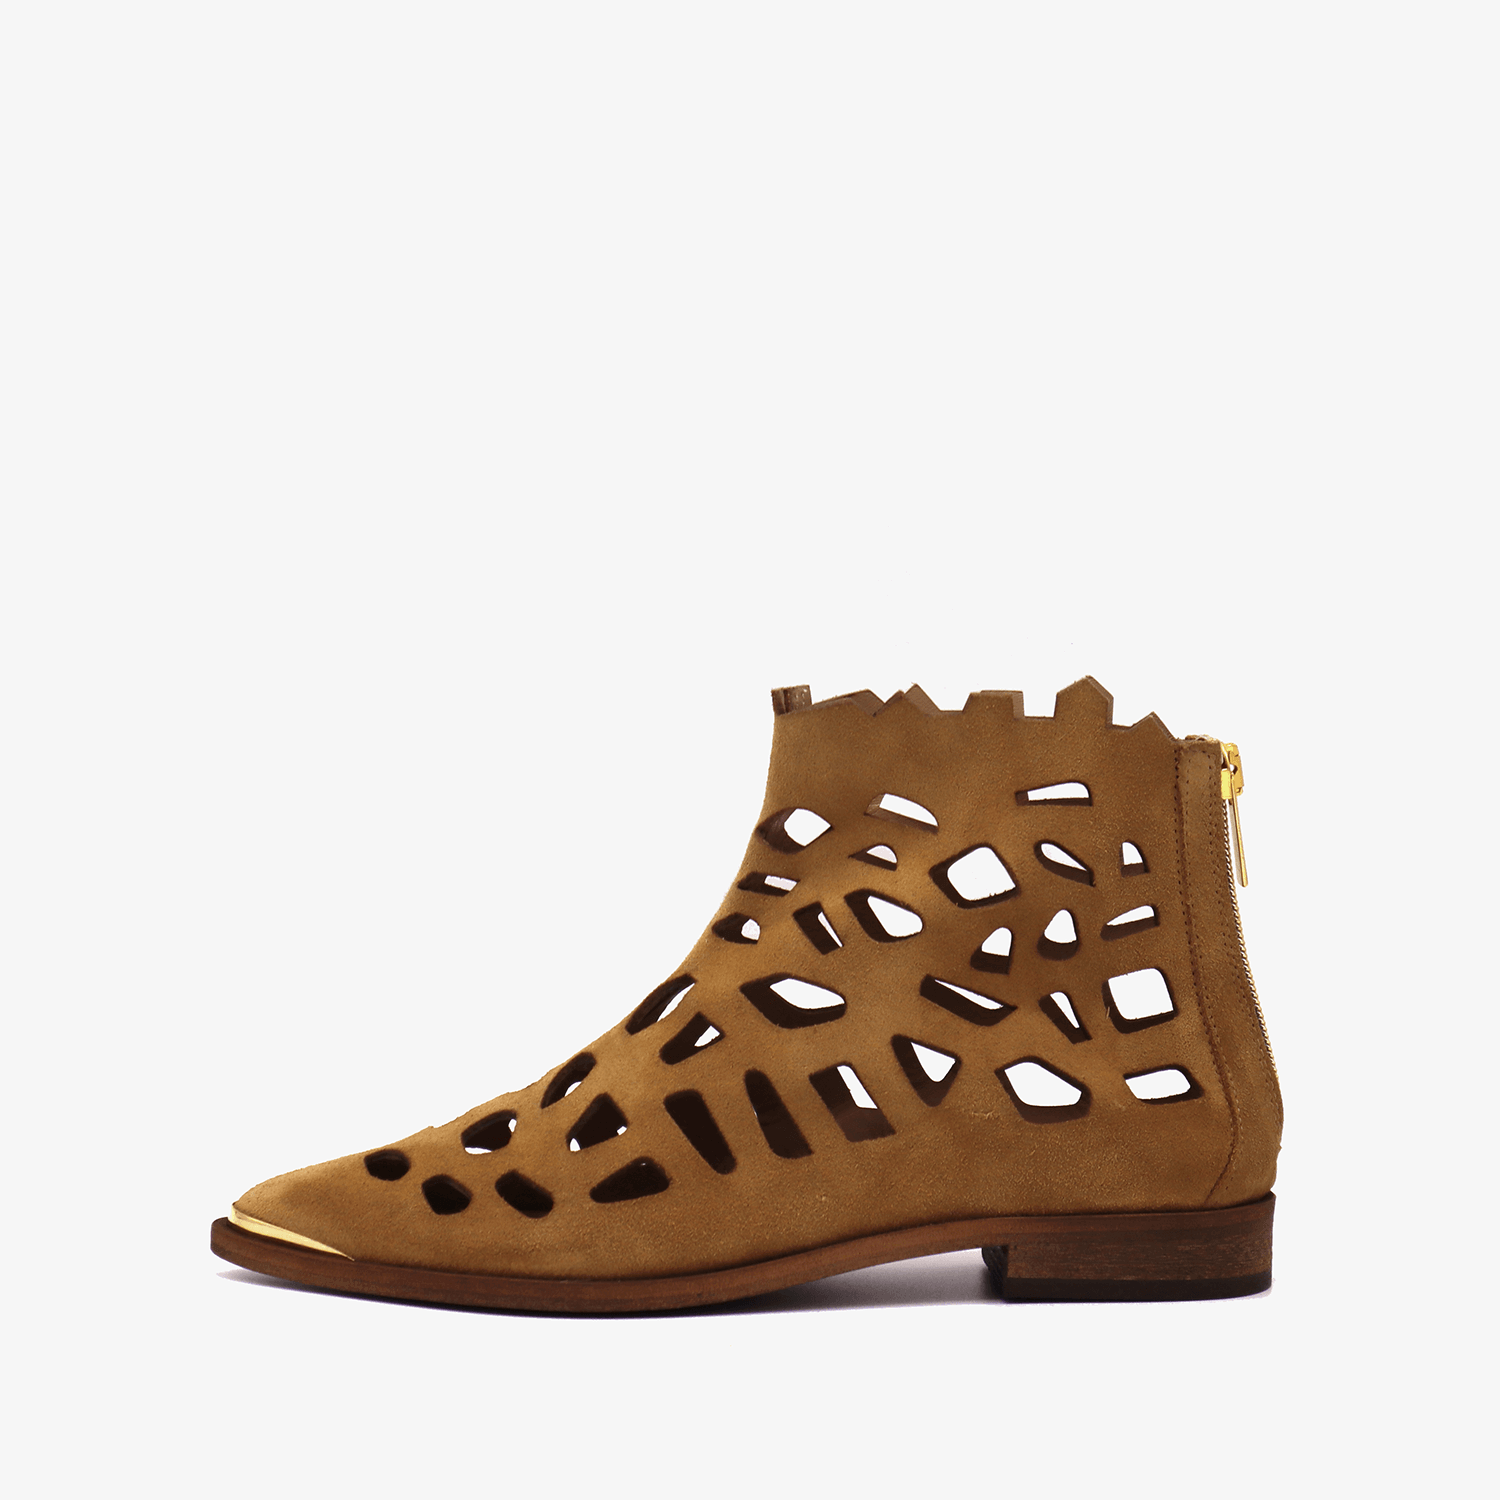 Perforated suede brown flat ankle boots with golden details.